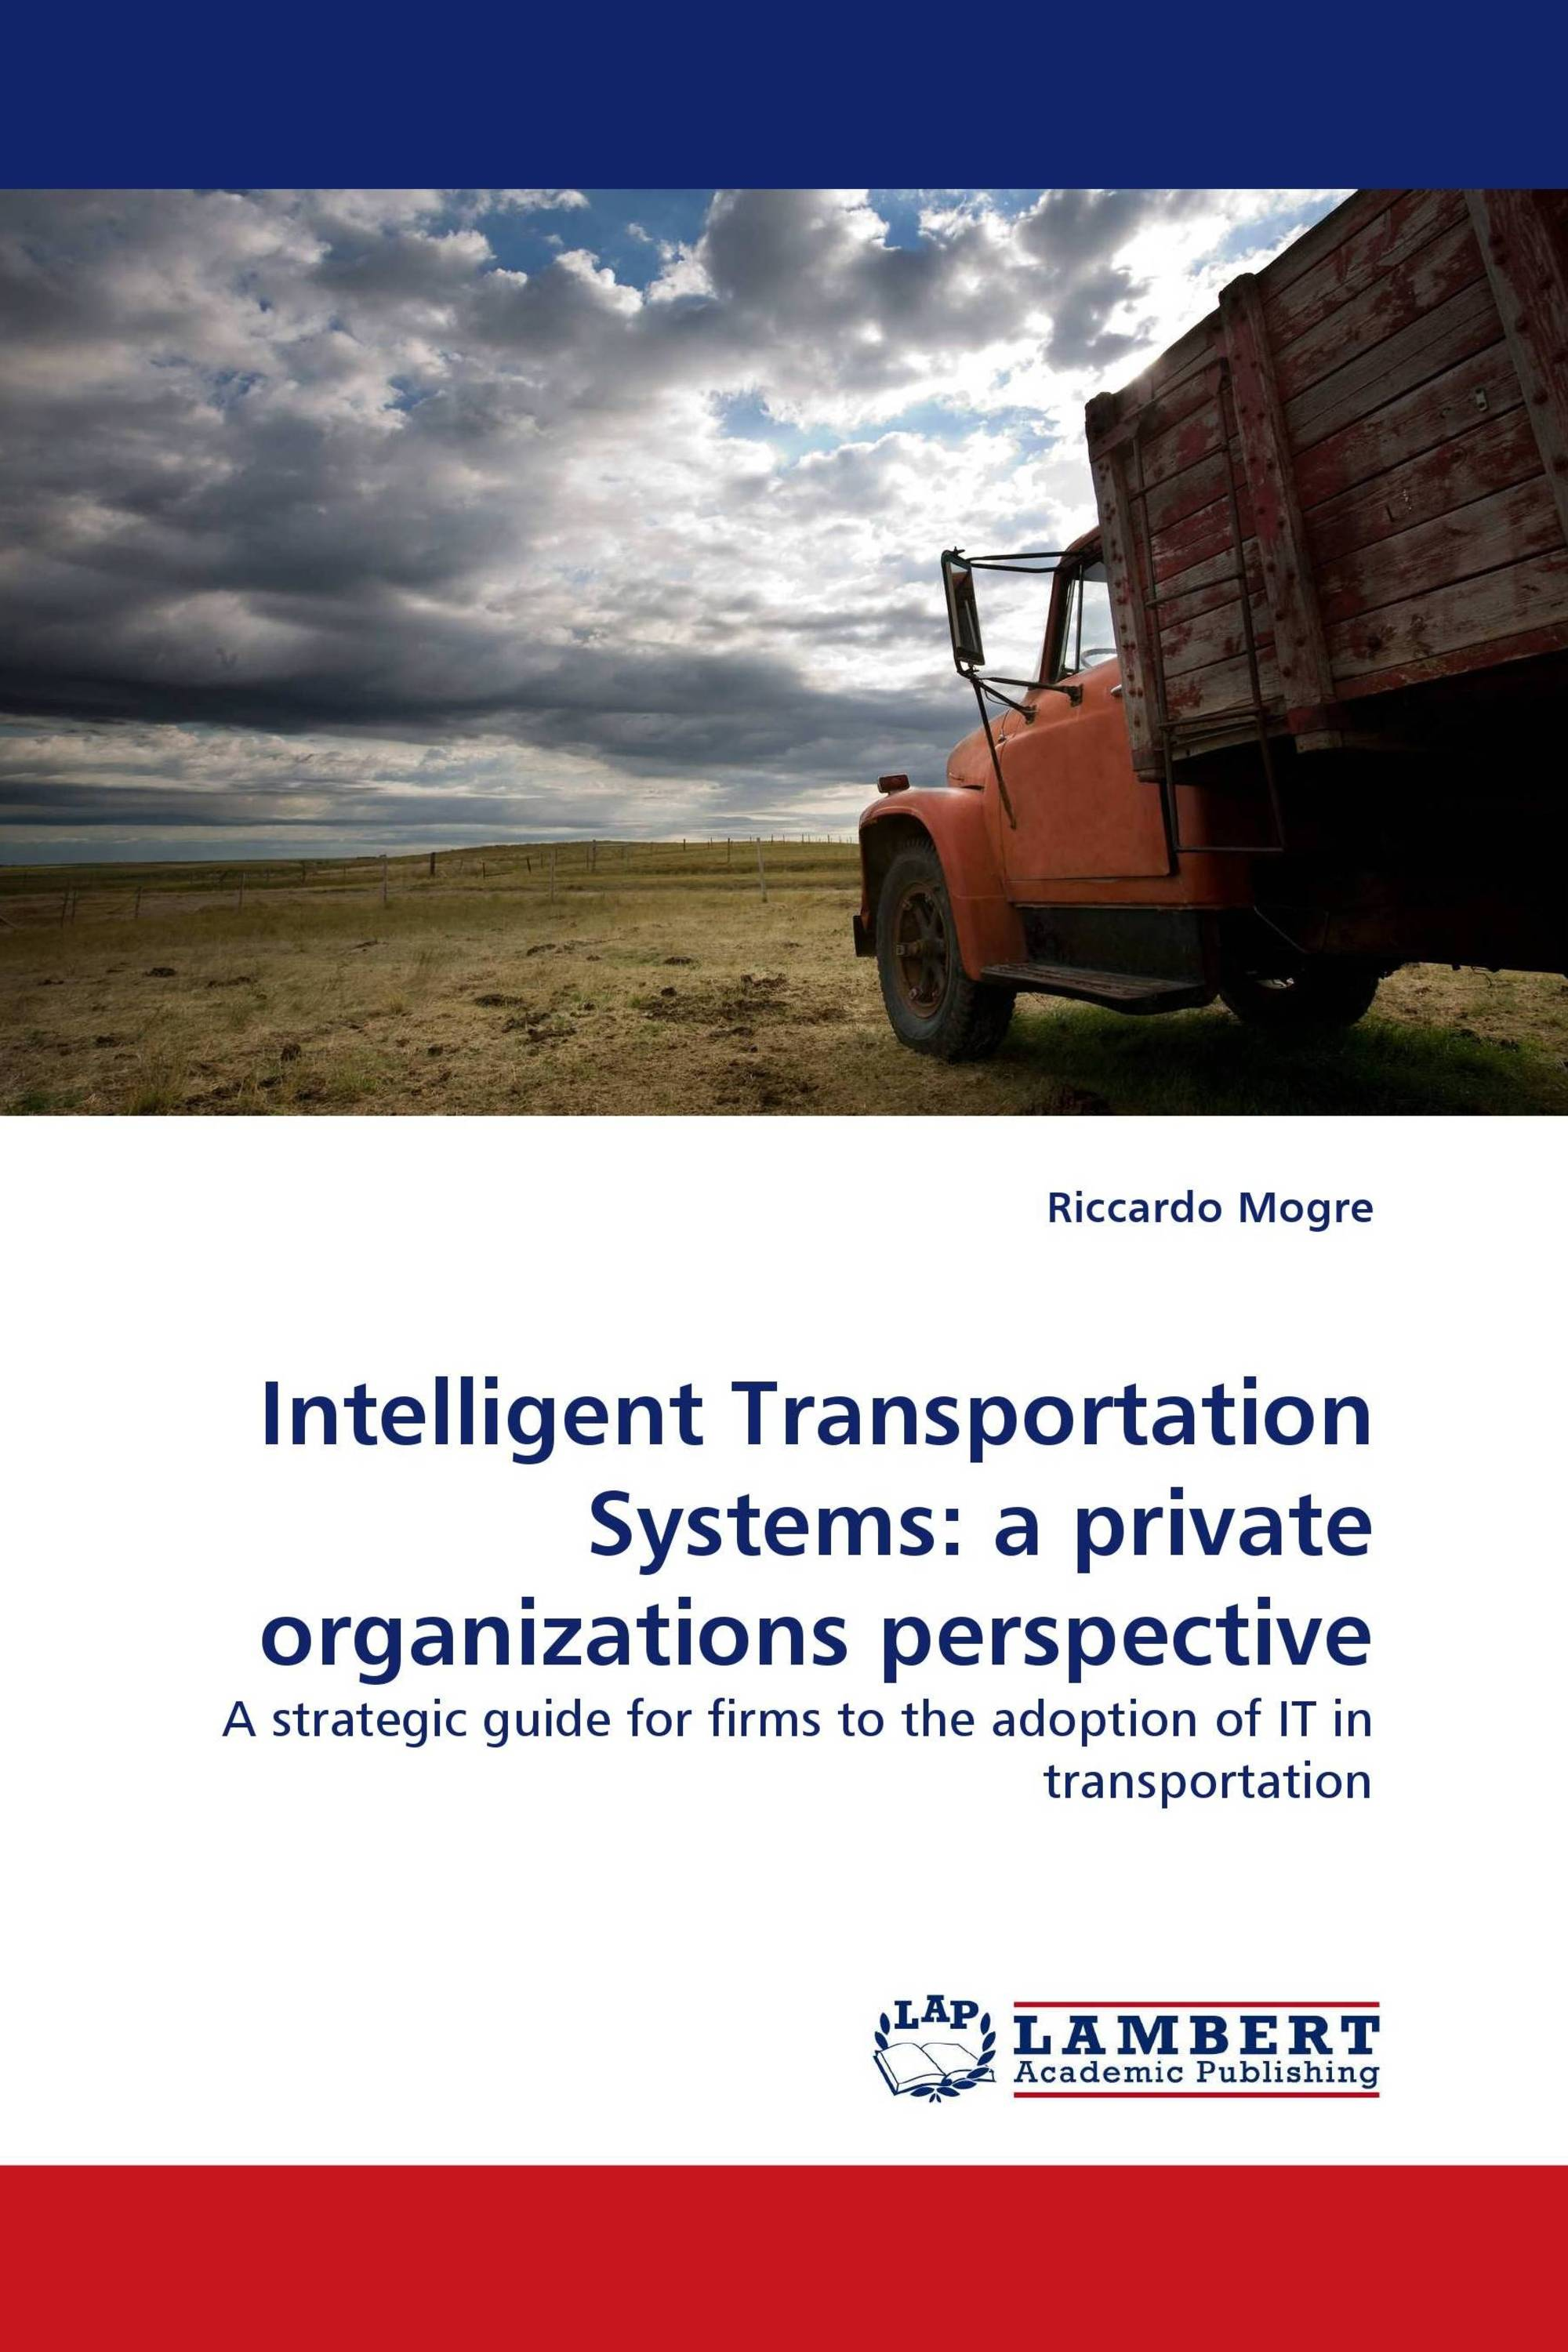 Intelligent Transportation Systems: a private organizations perspective